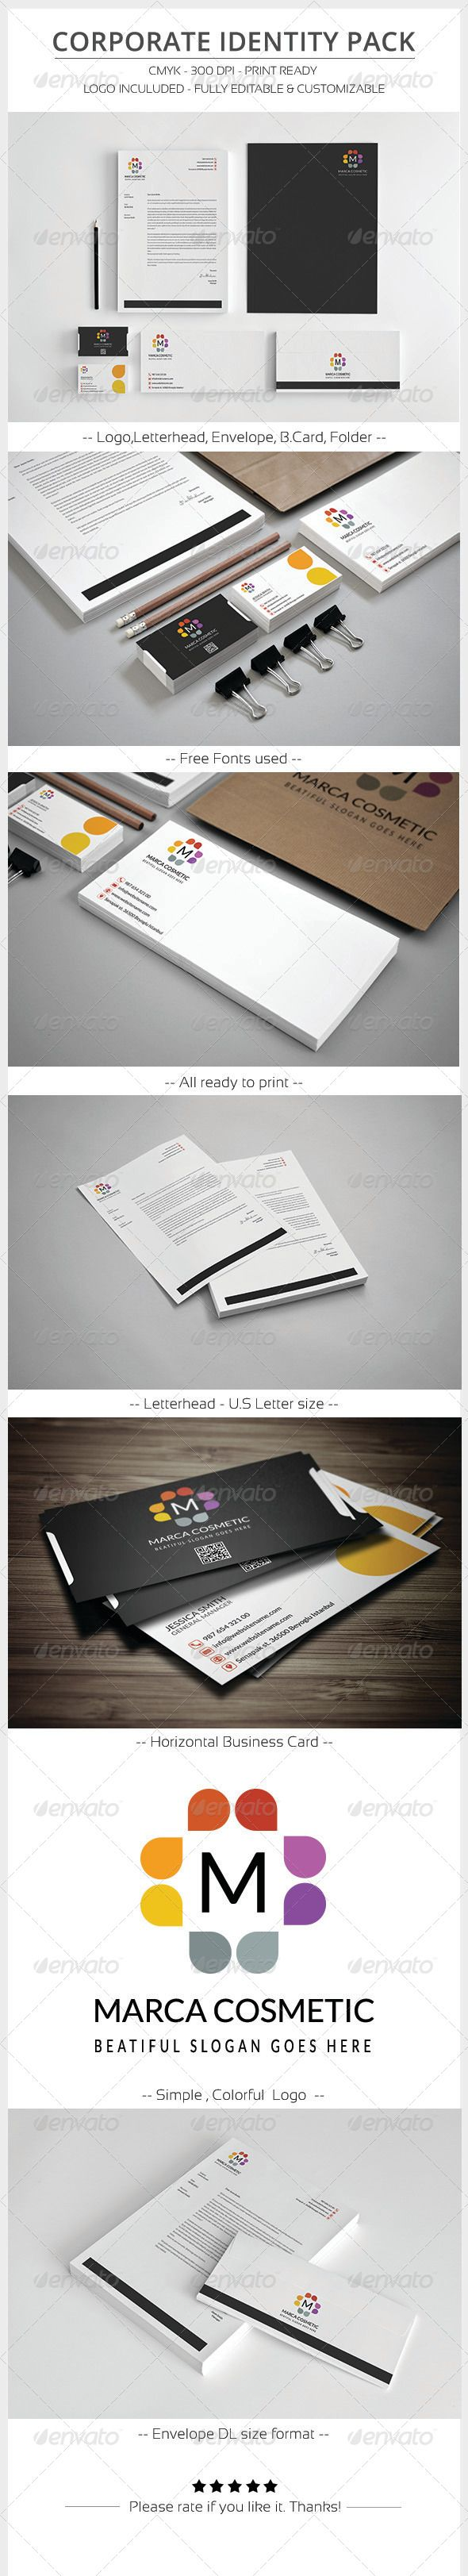 Corporate Identity Pack - #Stationery #Print #Templates Download here: https://graphicriver.net/item/corporate-identity-pack/6062342?ref=alena994